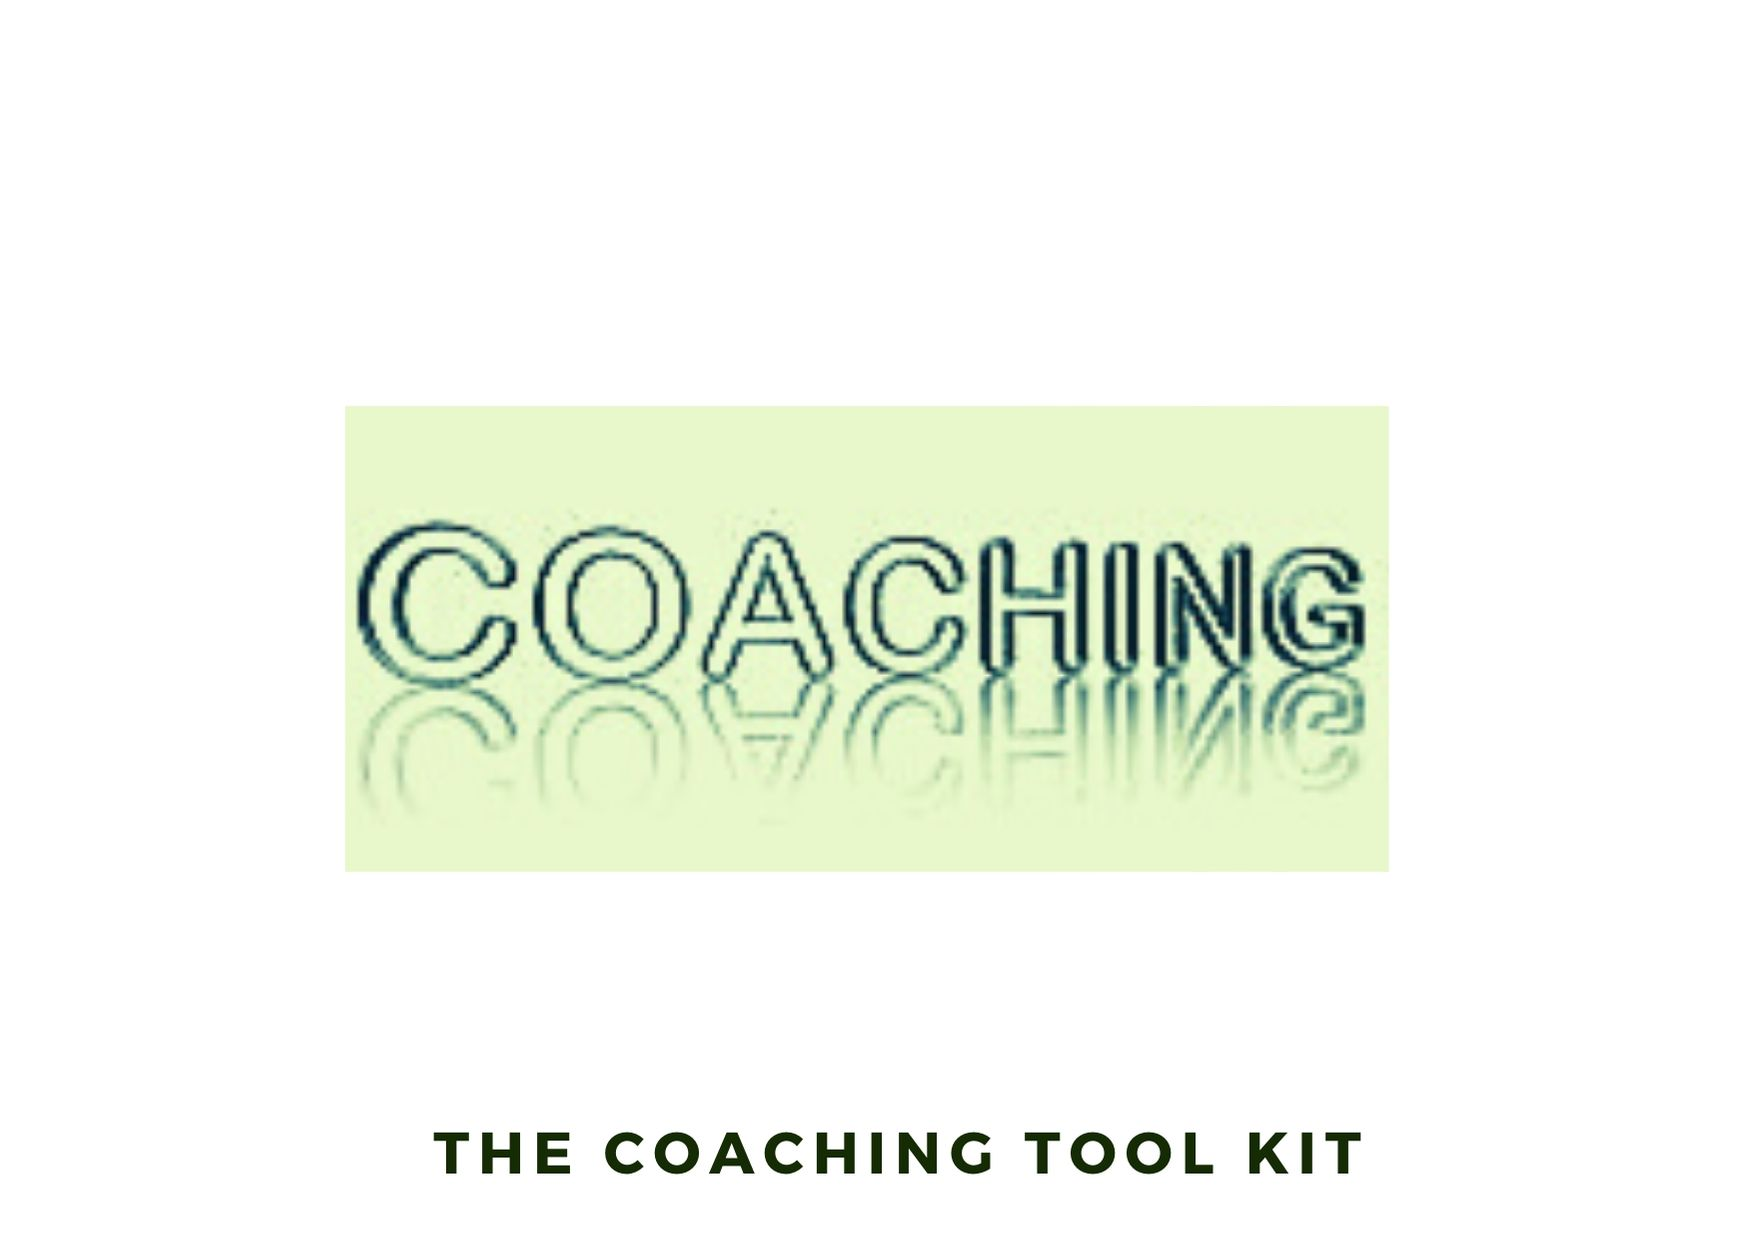 The coaching tool kit